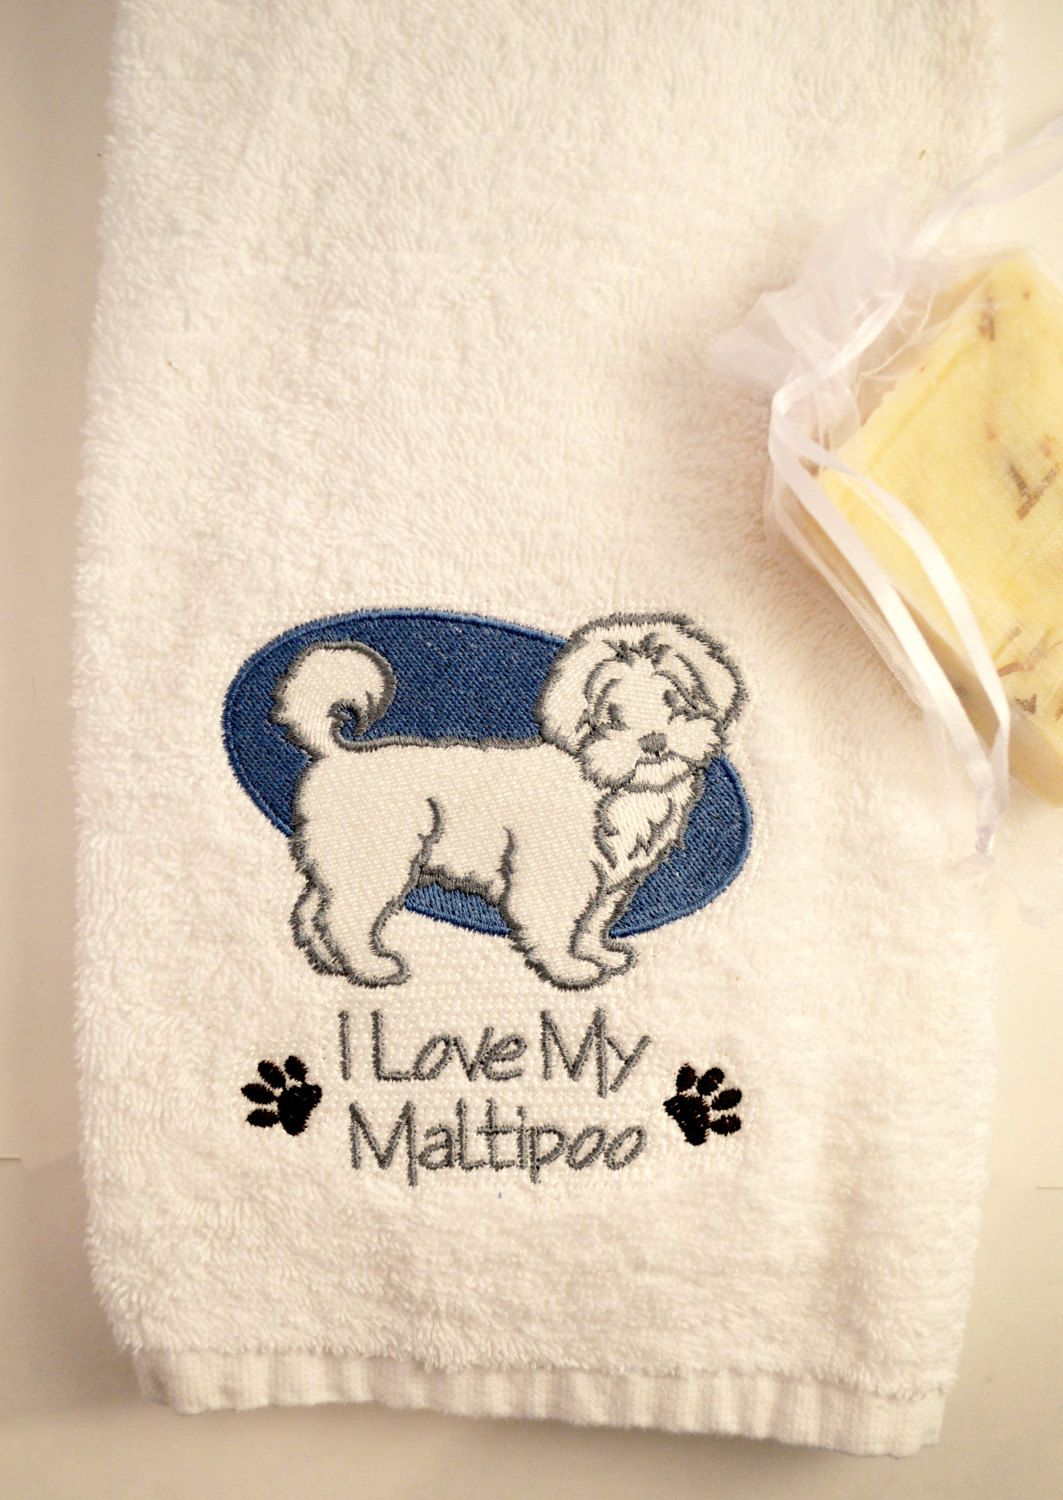 Embroidered Maltipoo Hand Towels Gifts Under 20 Gift For Dog Lovers White Terry Cloth Towel By HoundStreetBoutique On Etsy